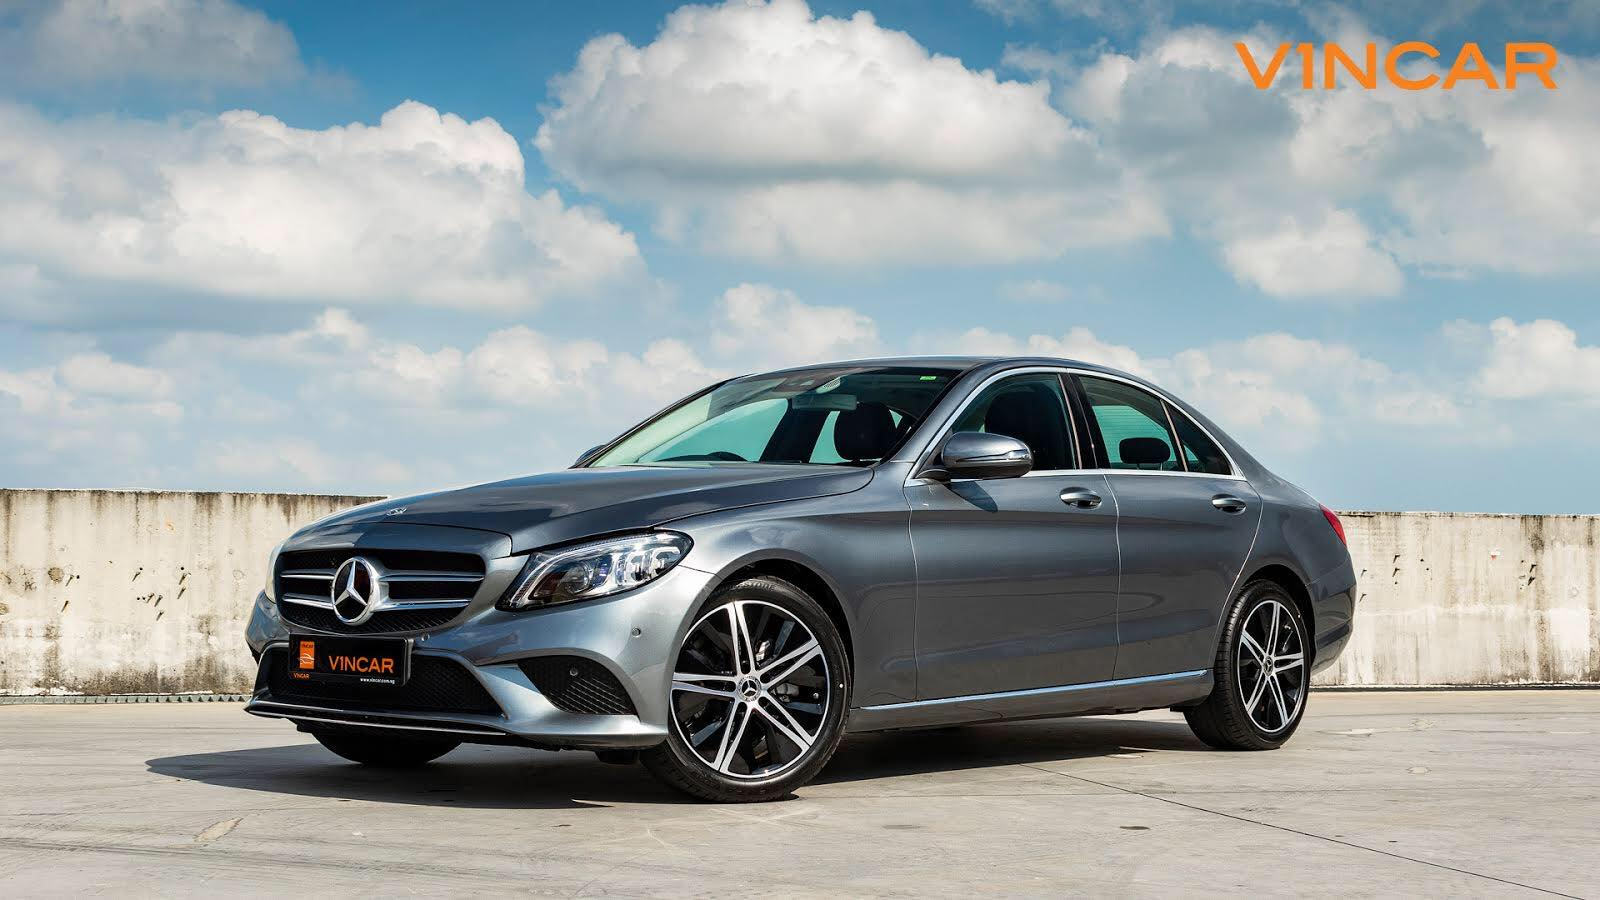 C200 Saloon Sport Premium equipped with EQ Boost